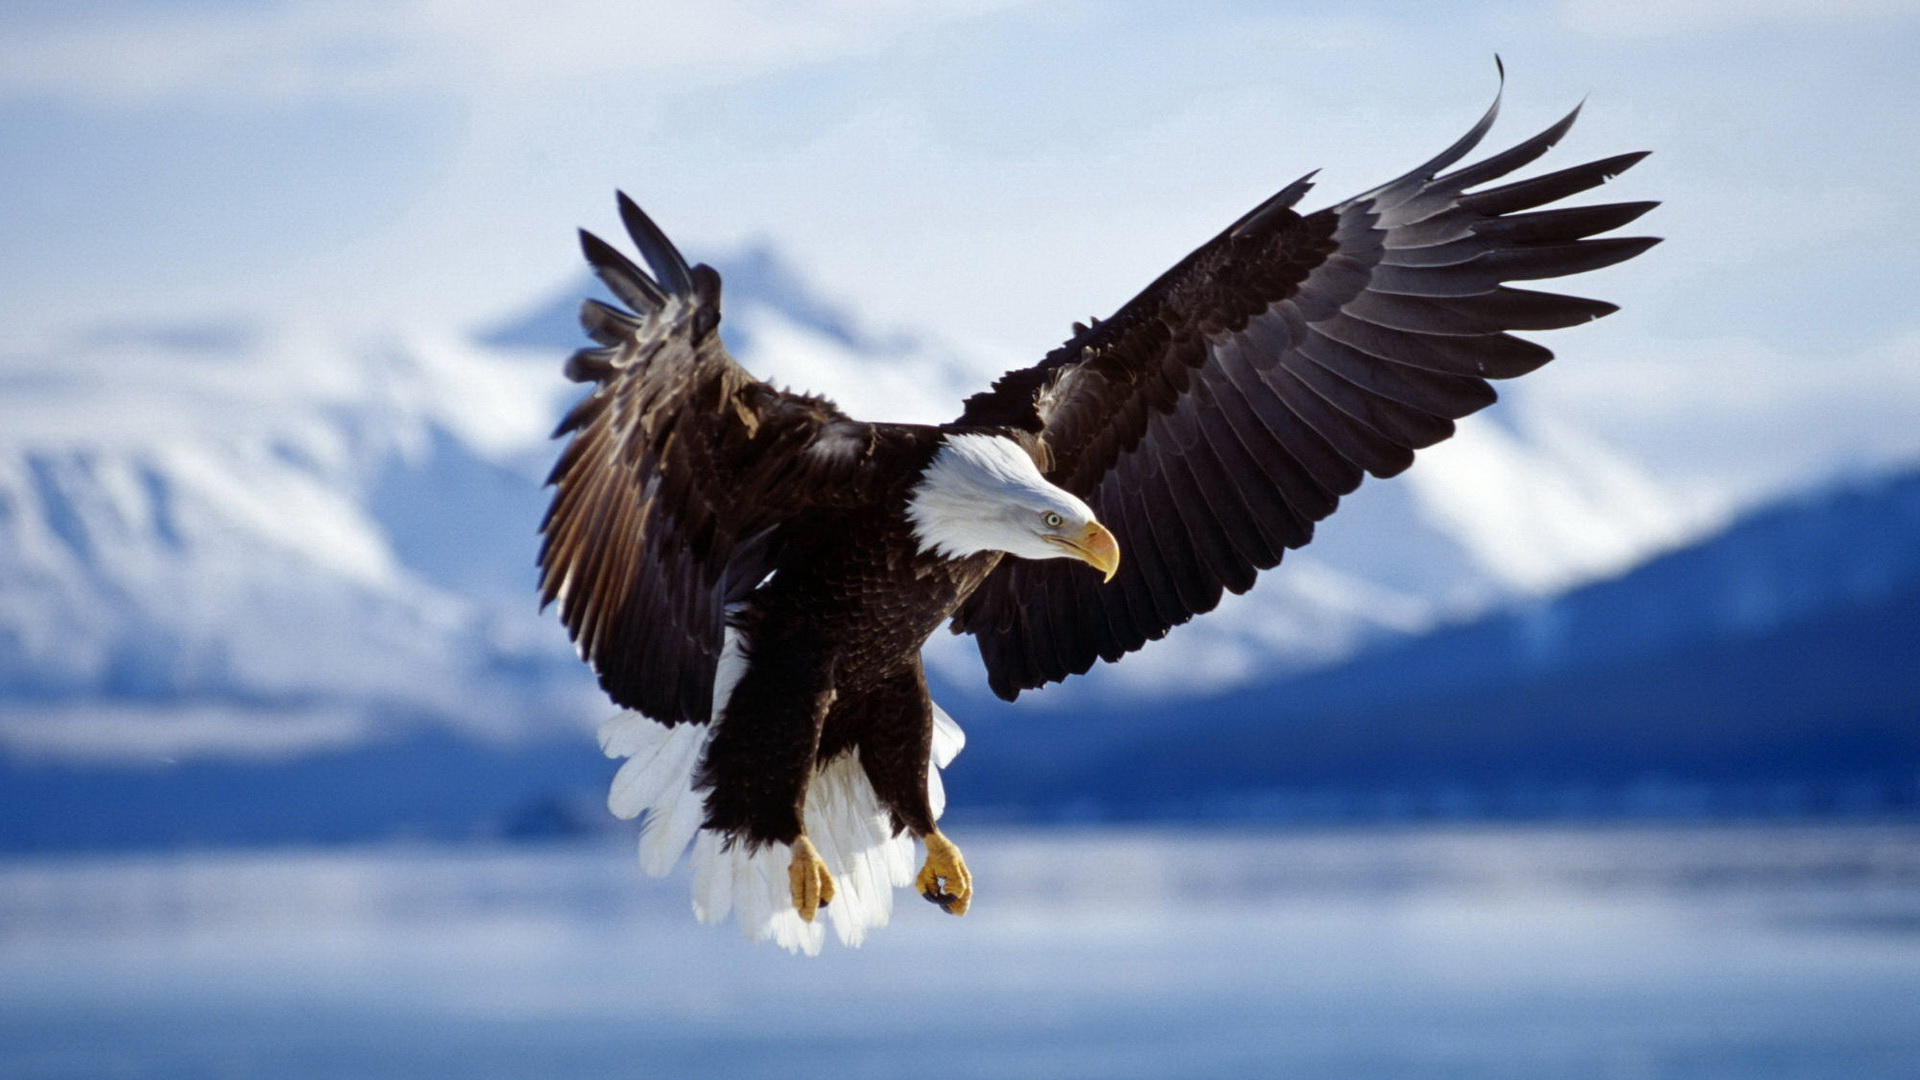 bald eagle wallpaper hd 007